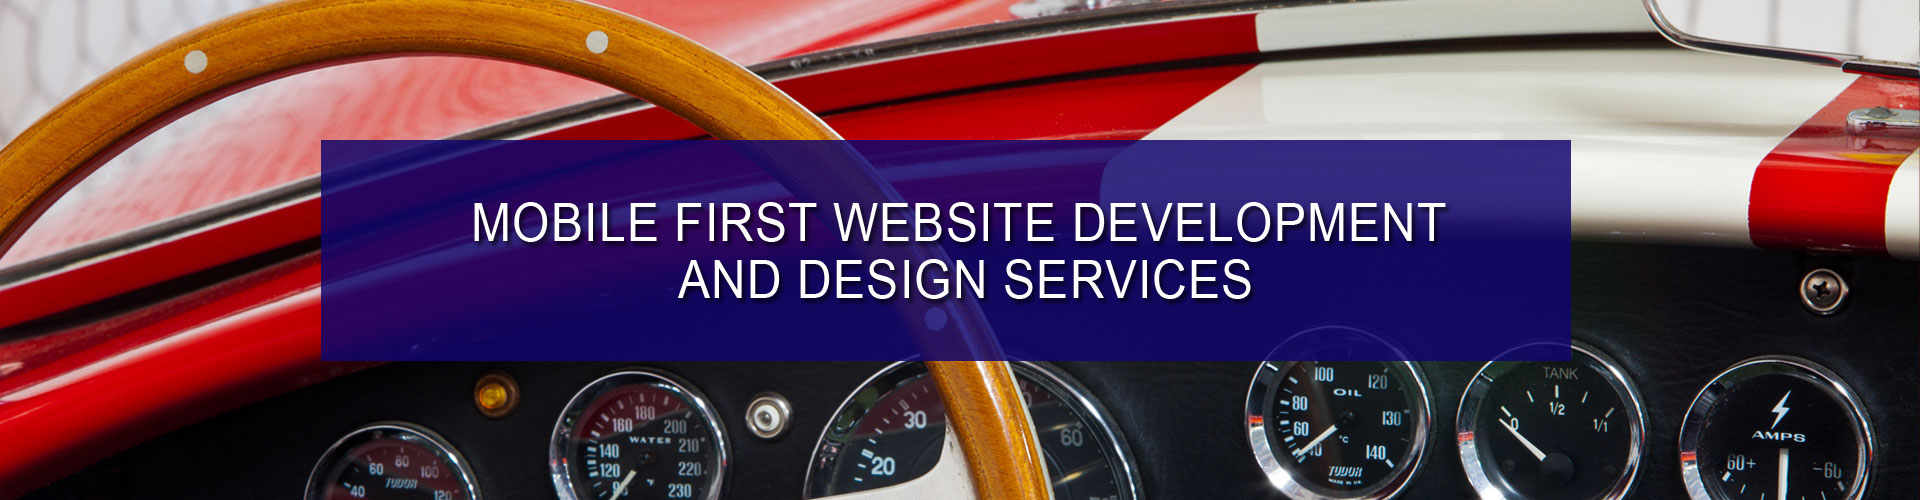 Mobile First Website Development